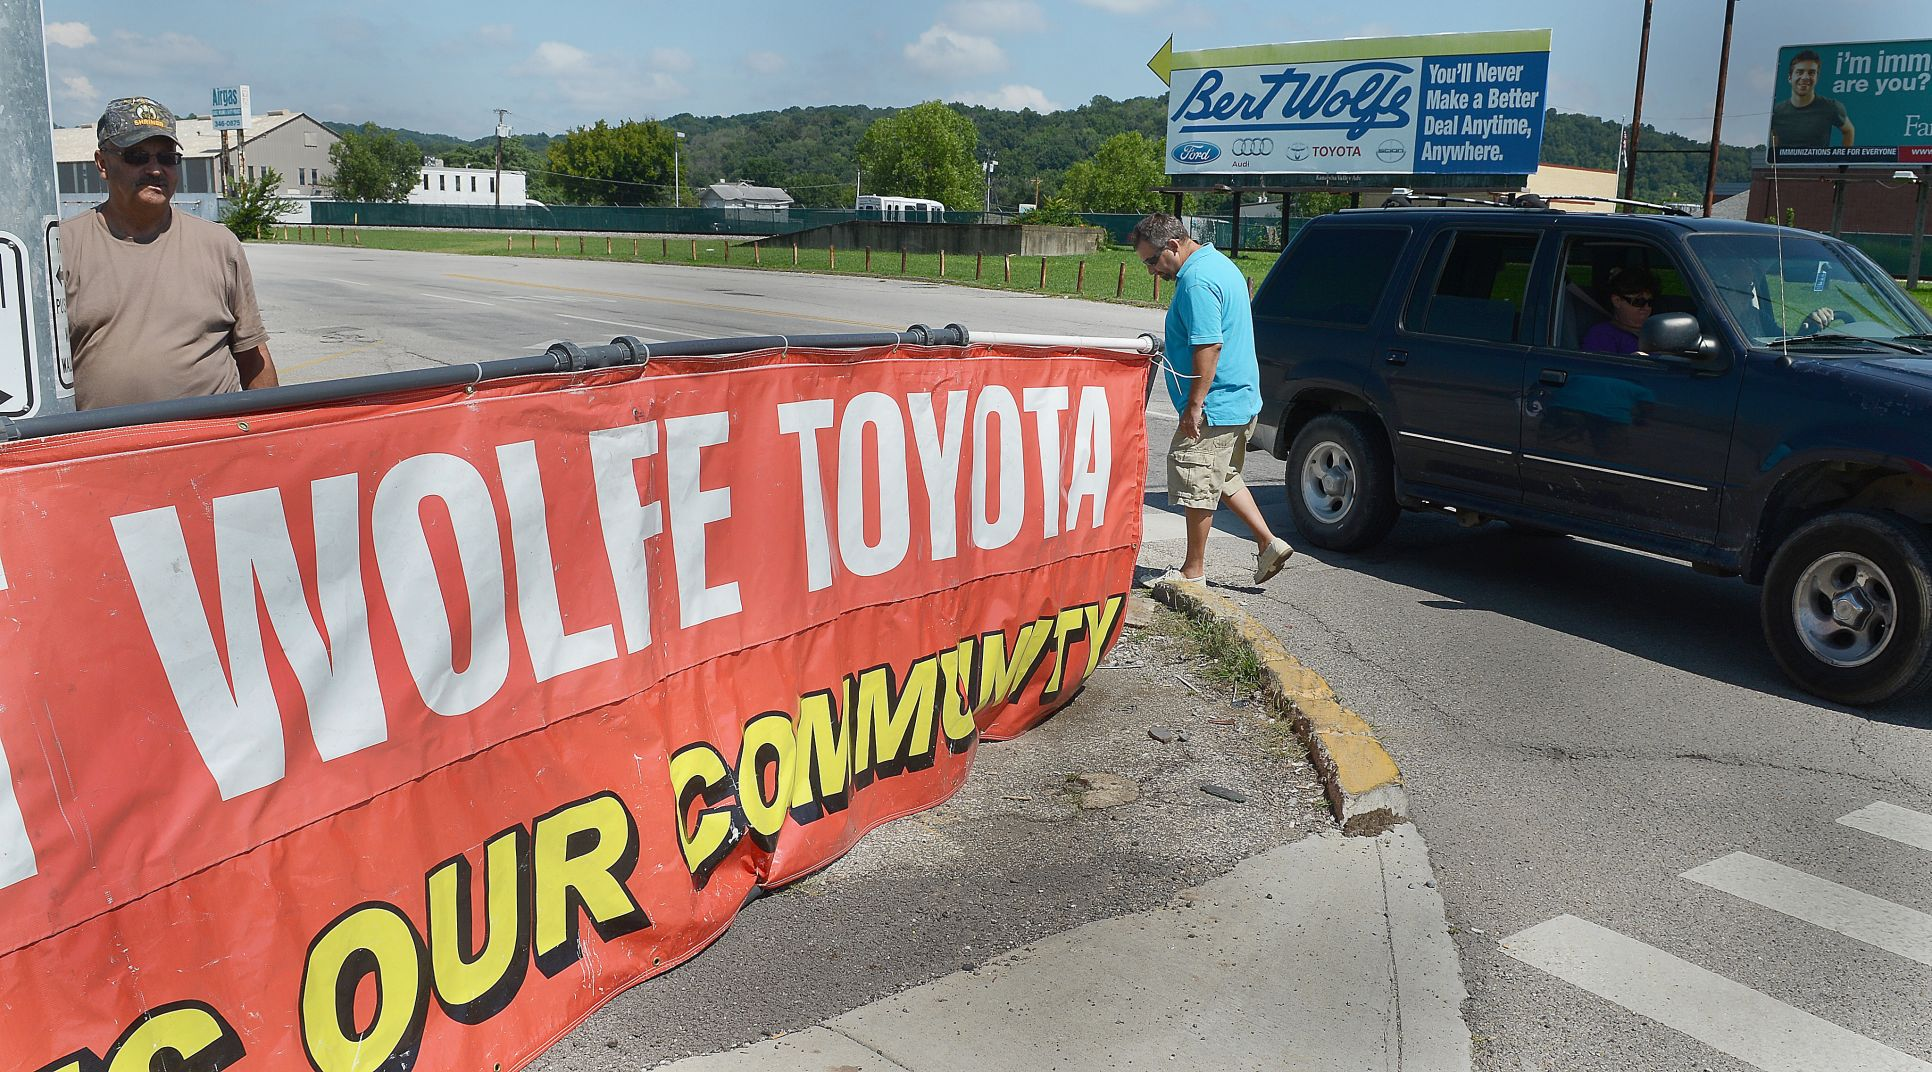 Union At Odds With Car Dealer; Contractor Disputes Claims